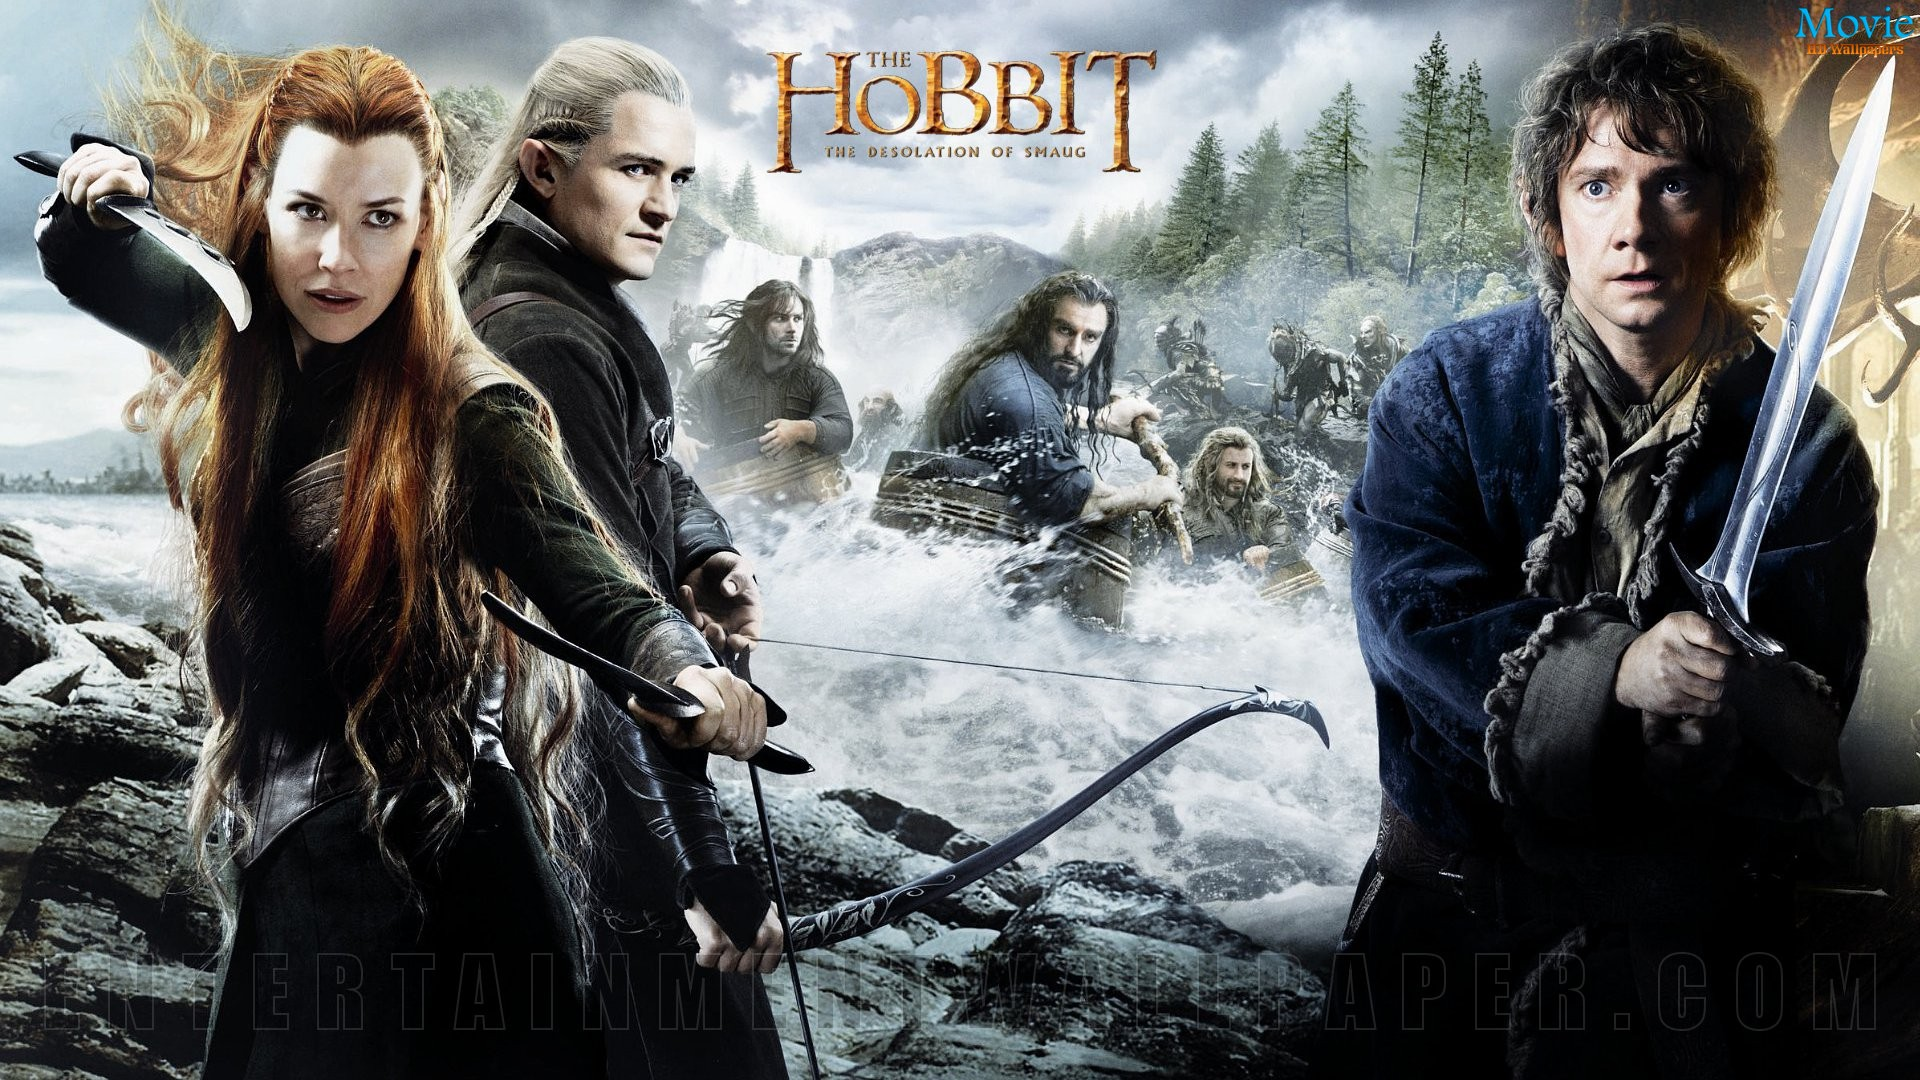 Starring The Hobbit Battle Of Five Armies